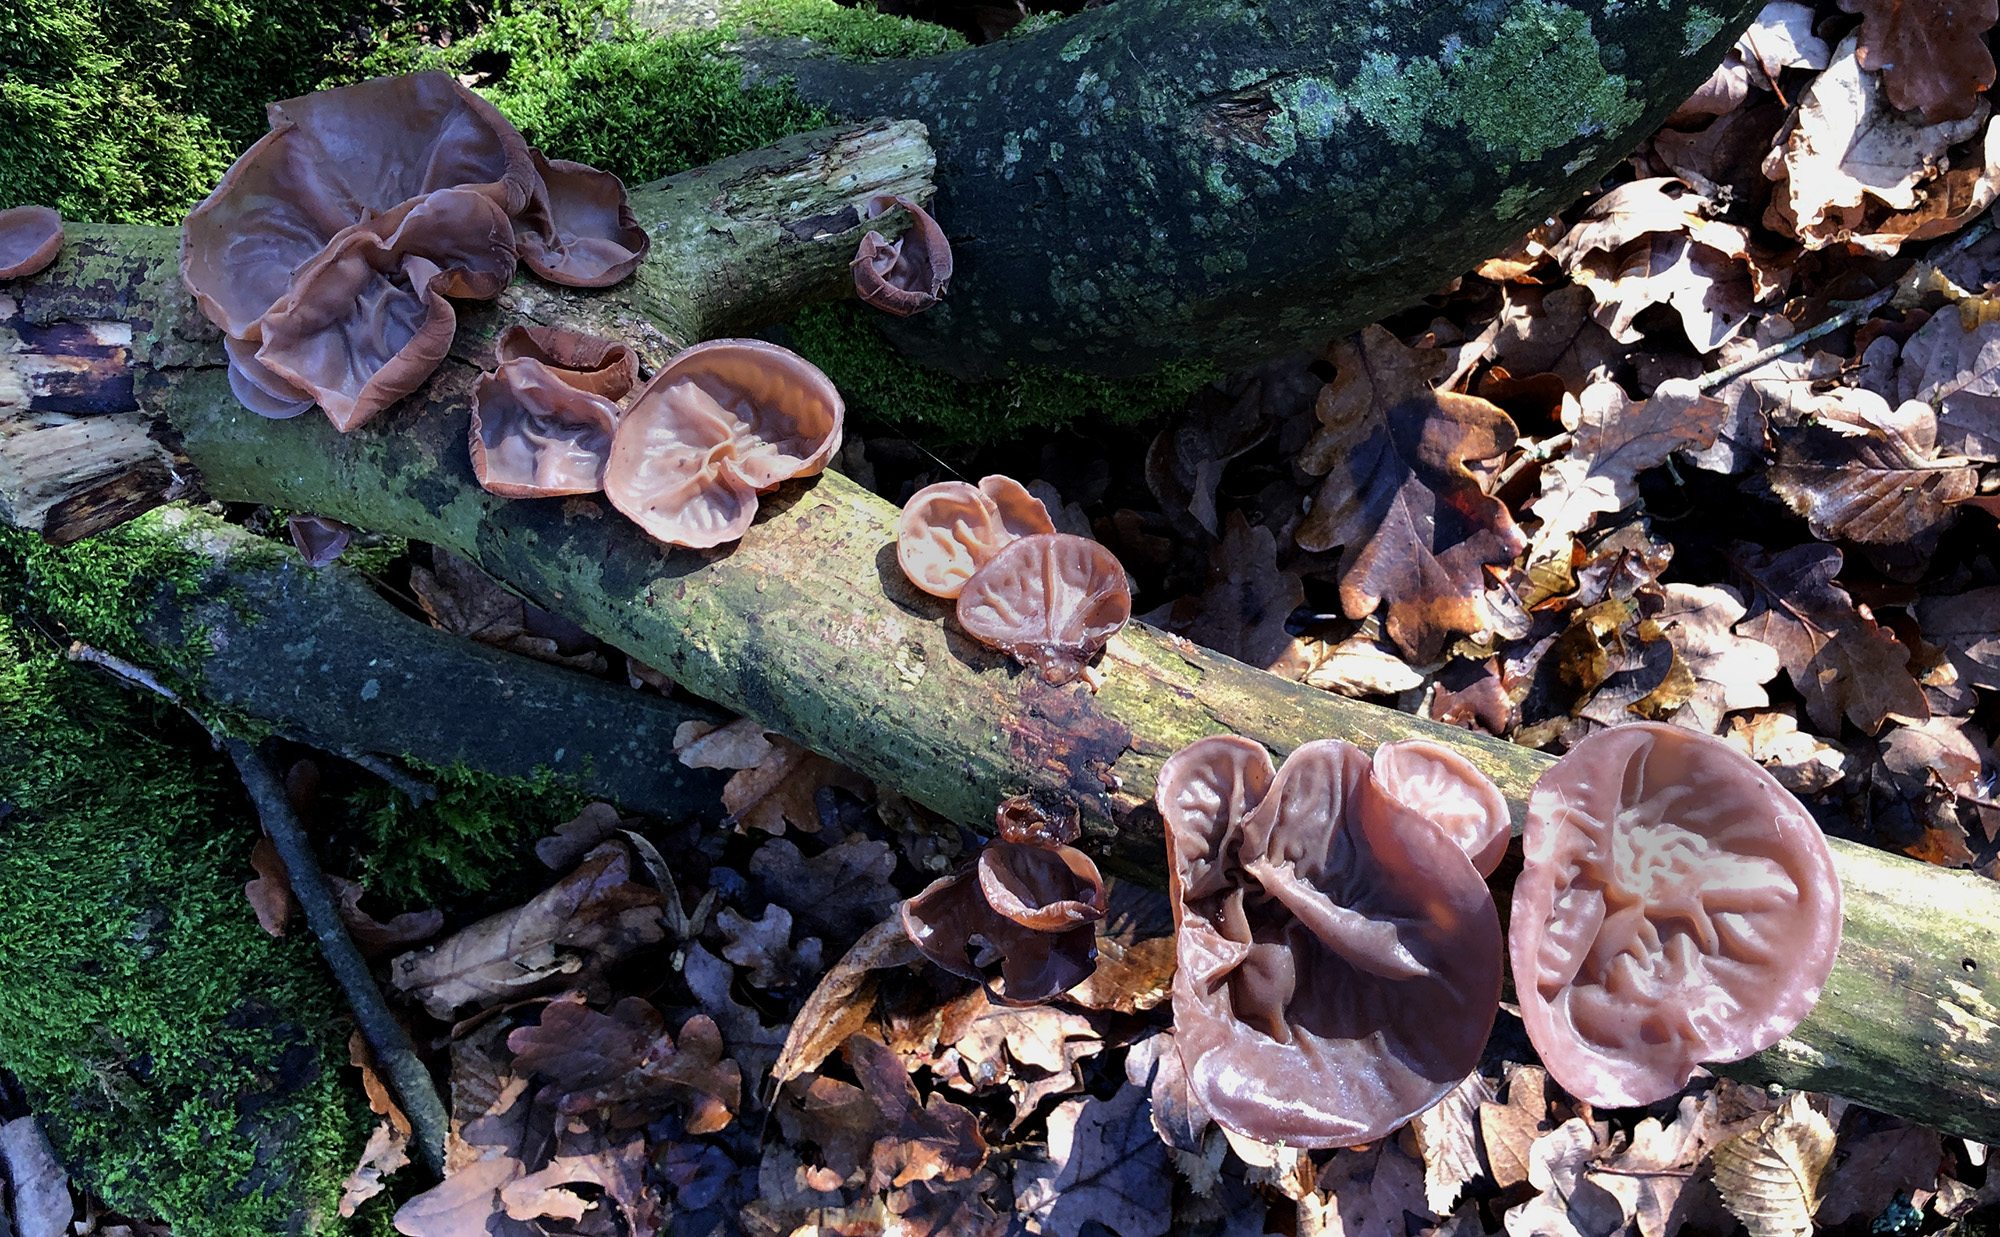 A fallen branch is covered in 'Wood Ear' fungus. Their fleshy colour and thin, upward-curving shape makes them uncannily similar to a human ear.